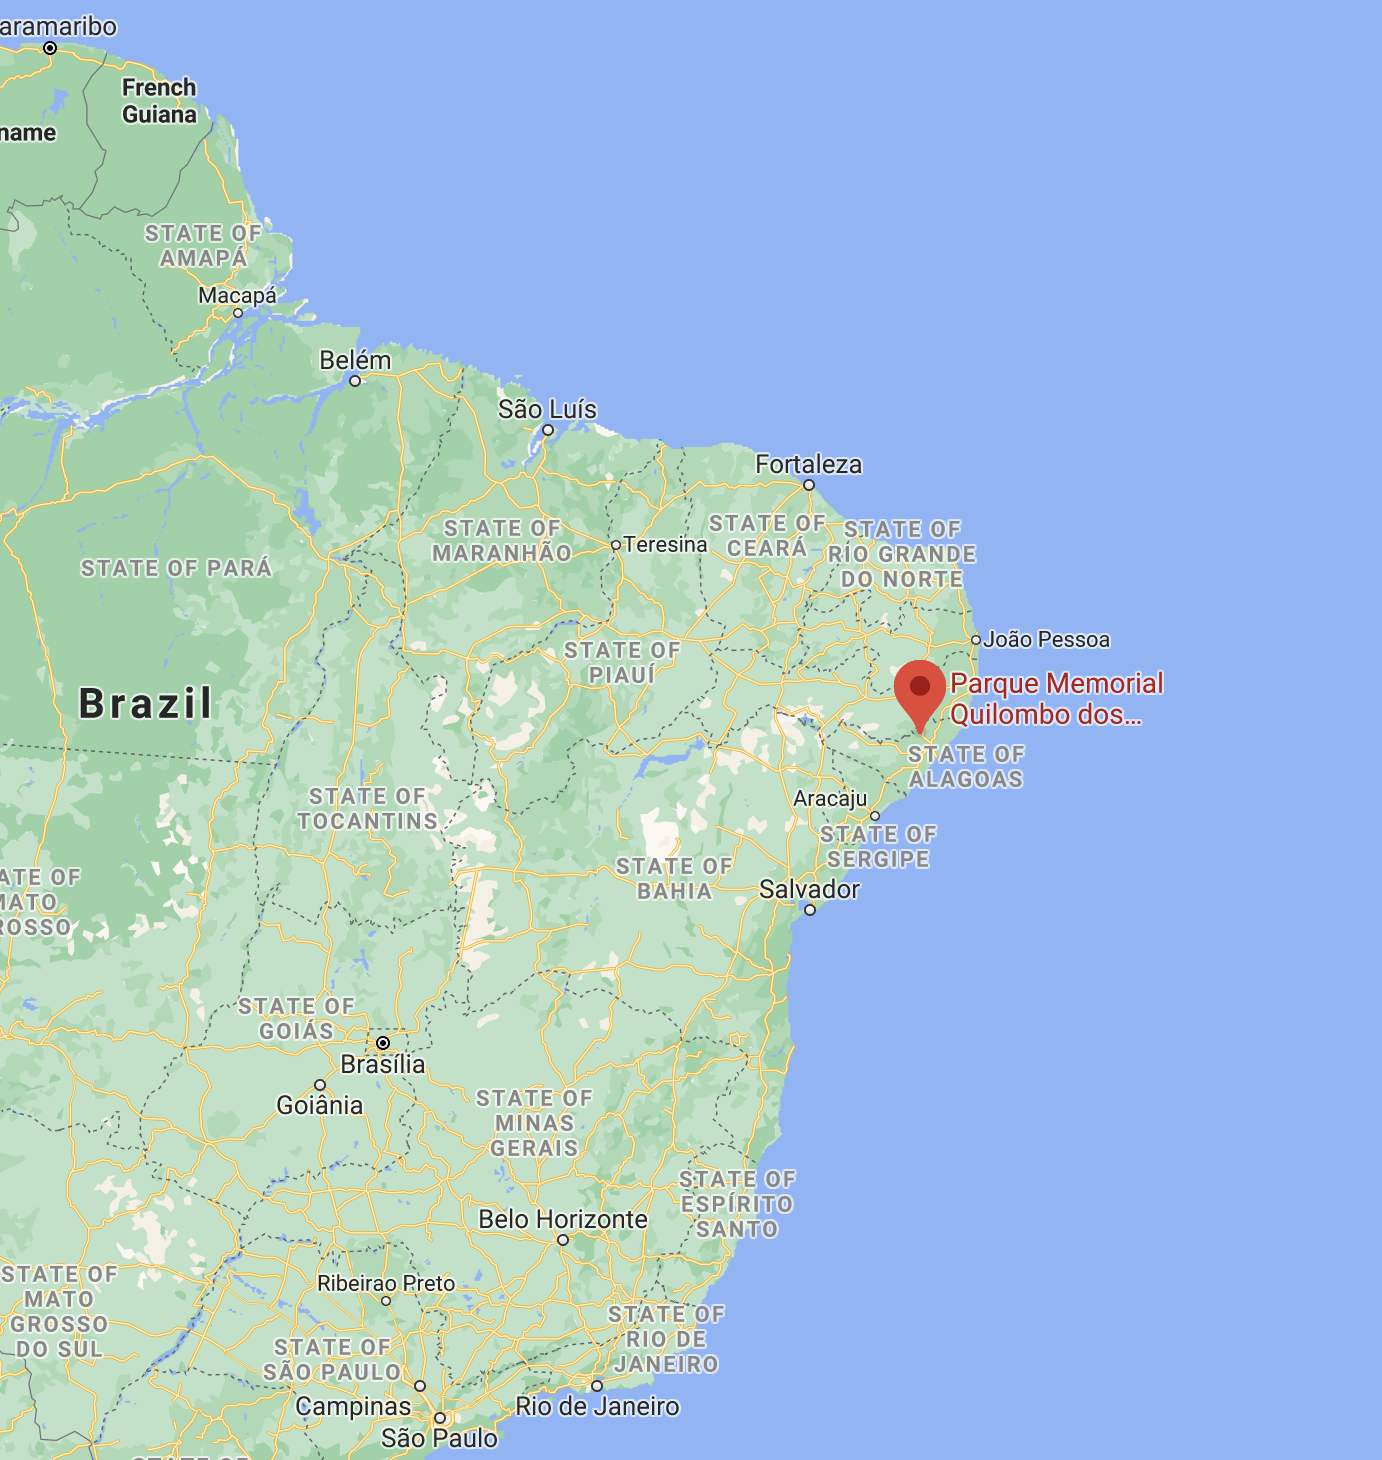 Approximate location of the Quilombo Dos Palmares